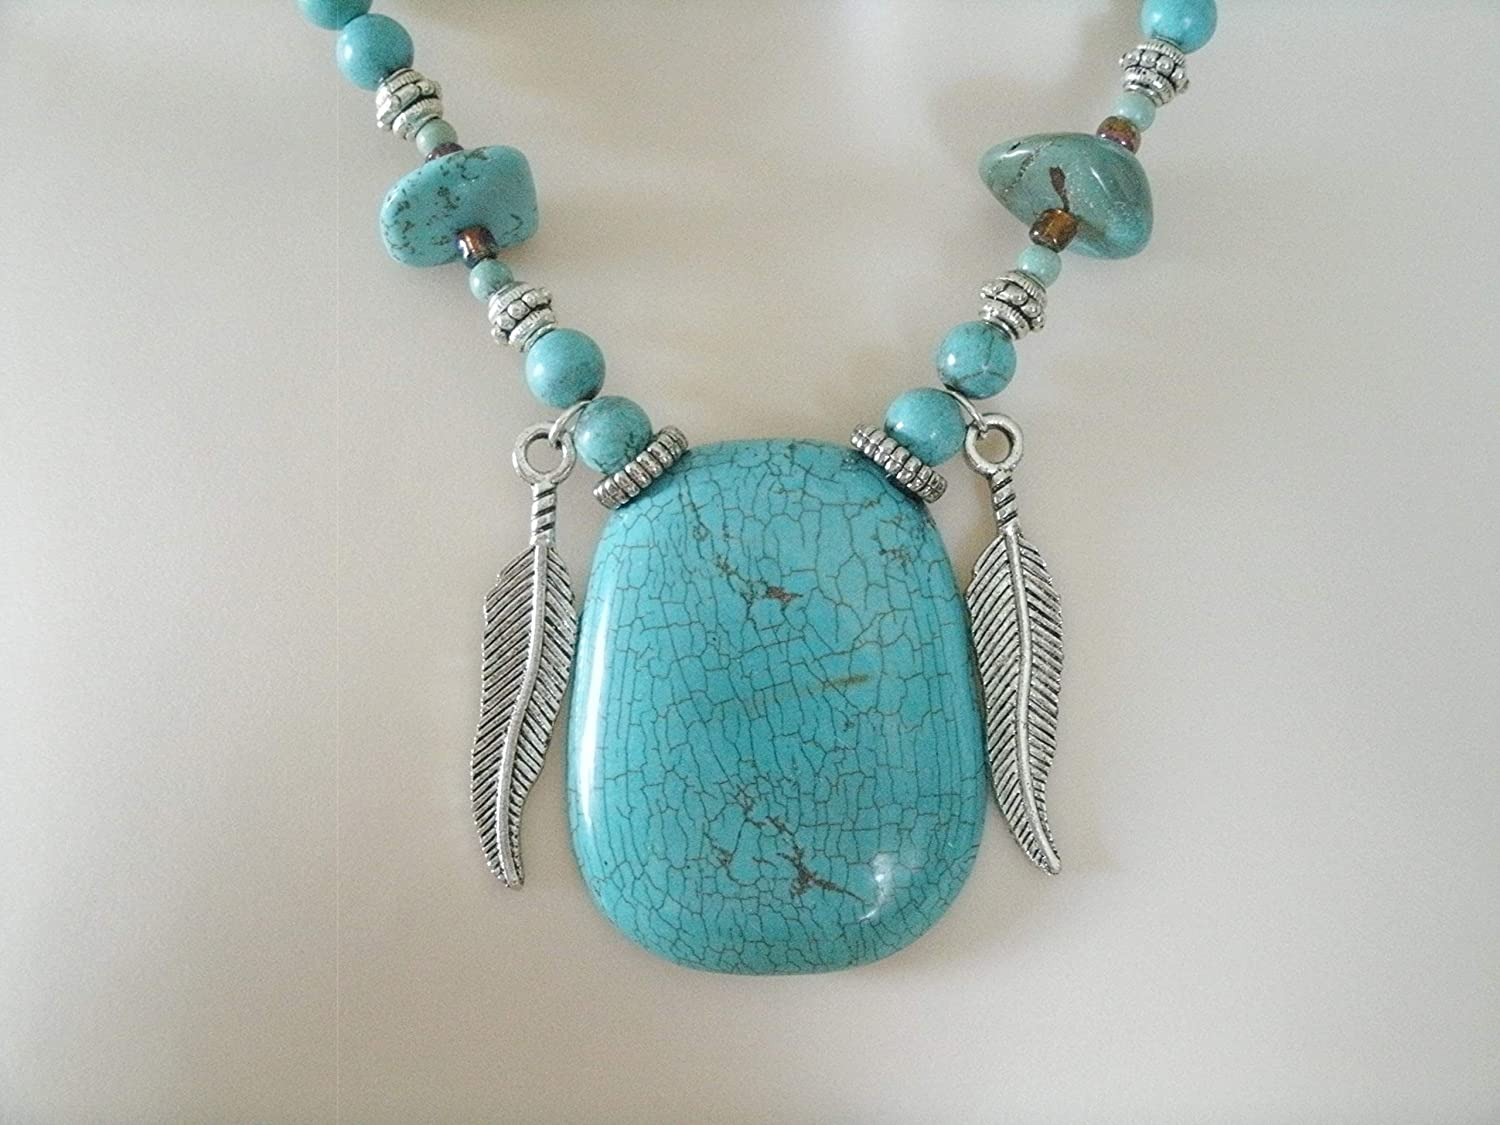 Turquoise Necklace handmade Outlet sale feature jewelry southwestern count Max 89% OFF southwest